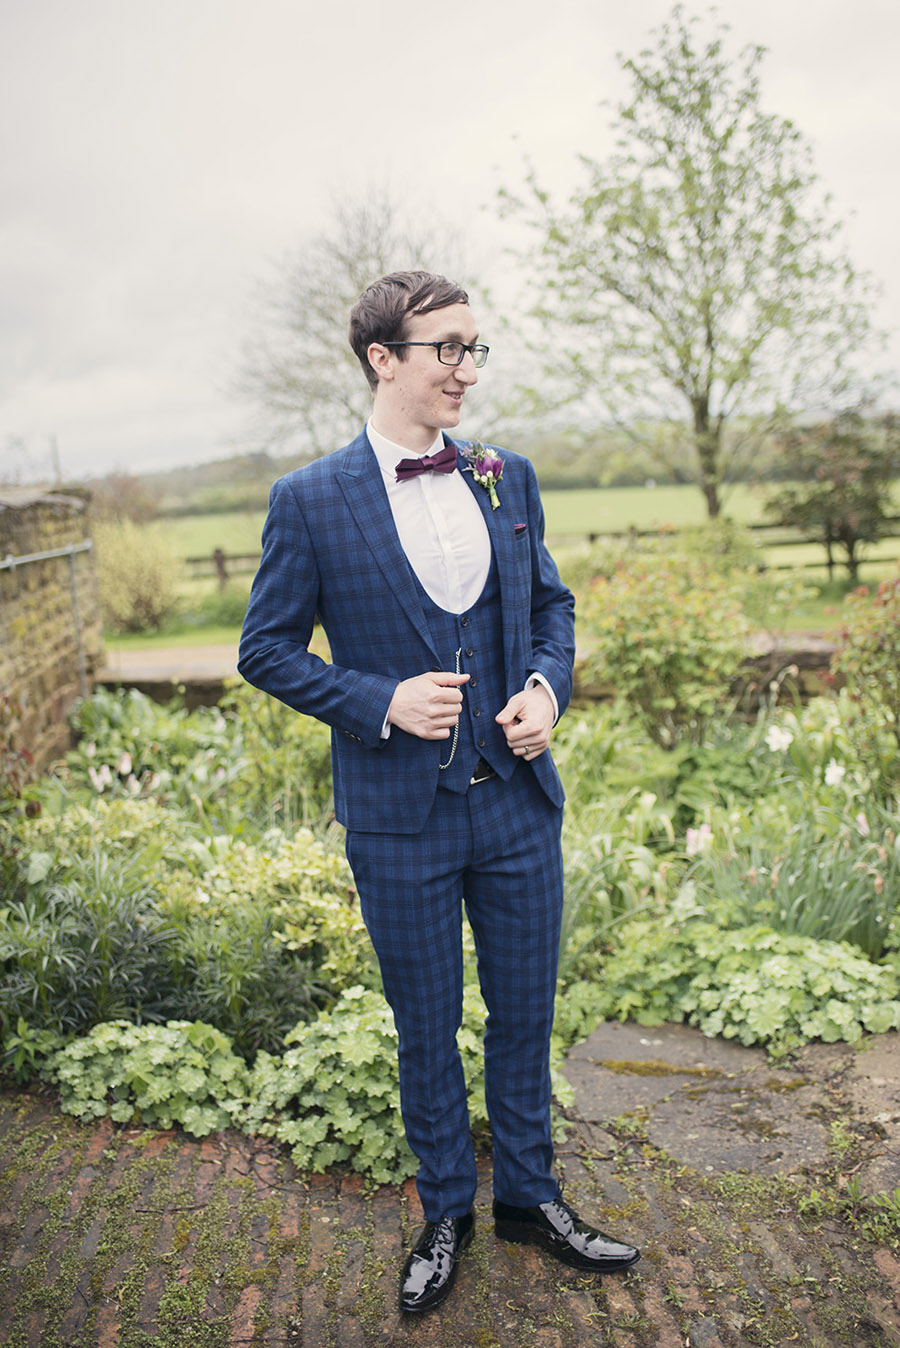 Gatsby vintage wedding at Crockwell Farm, images by Jodie Cooling Photography (20)